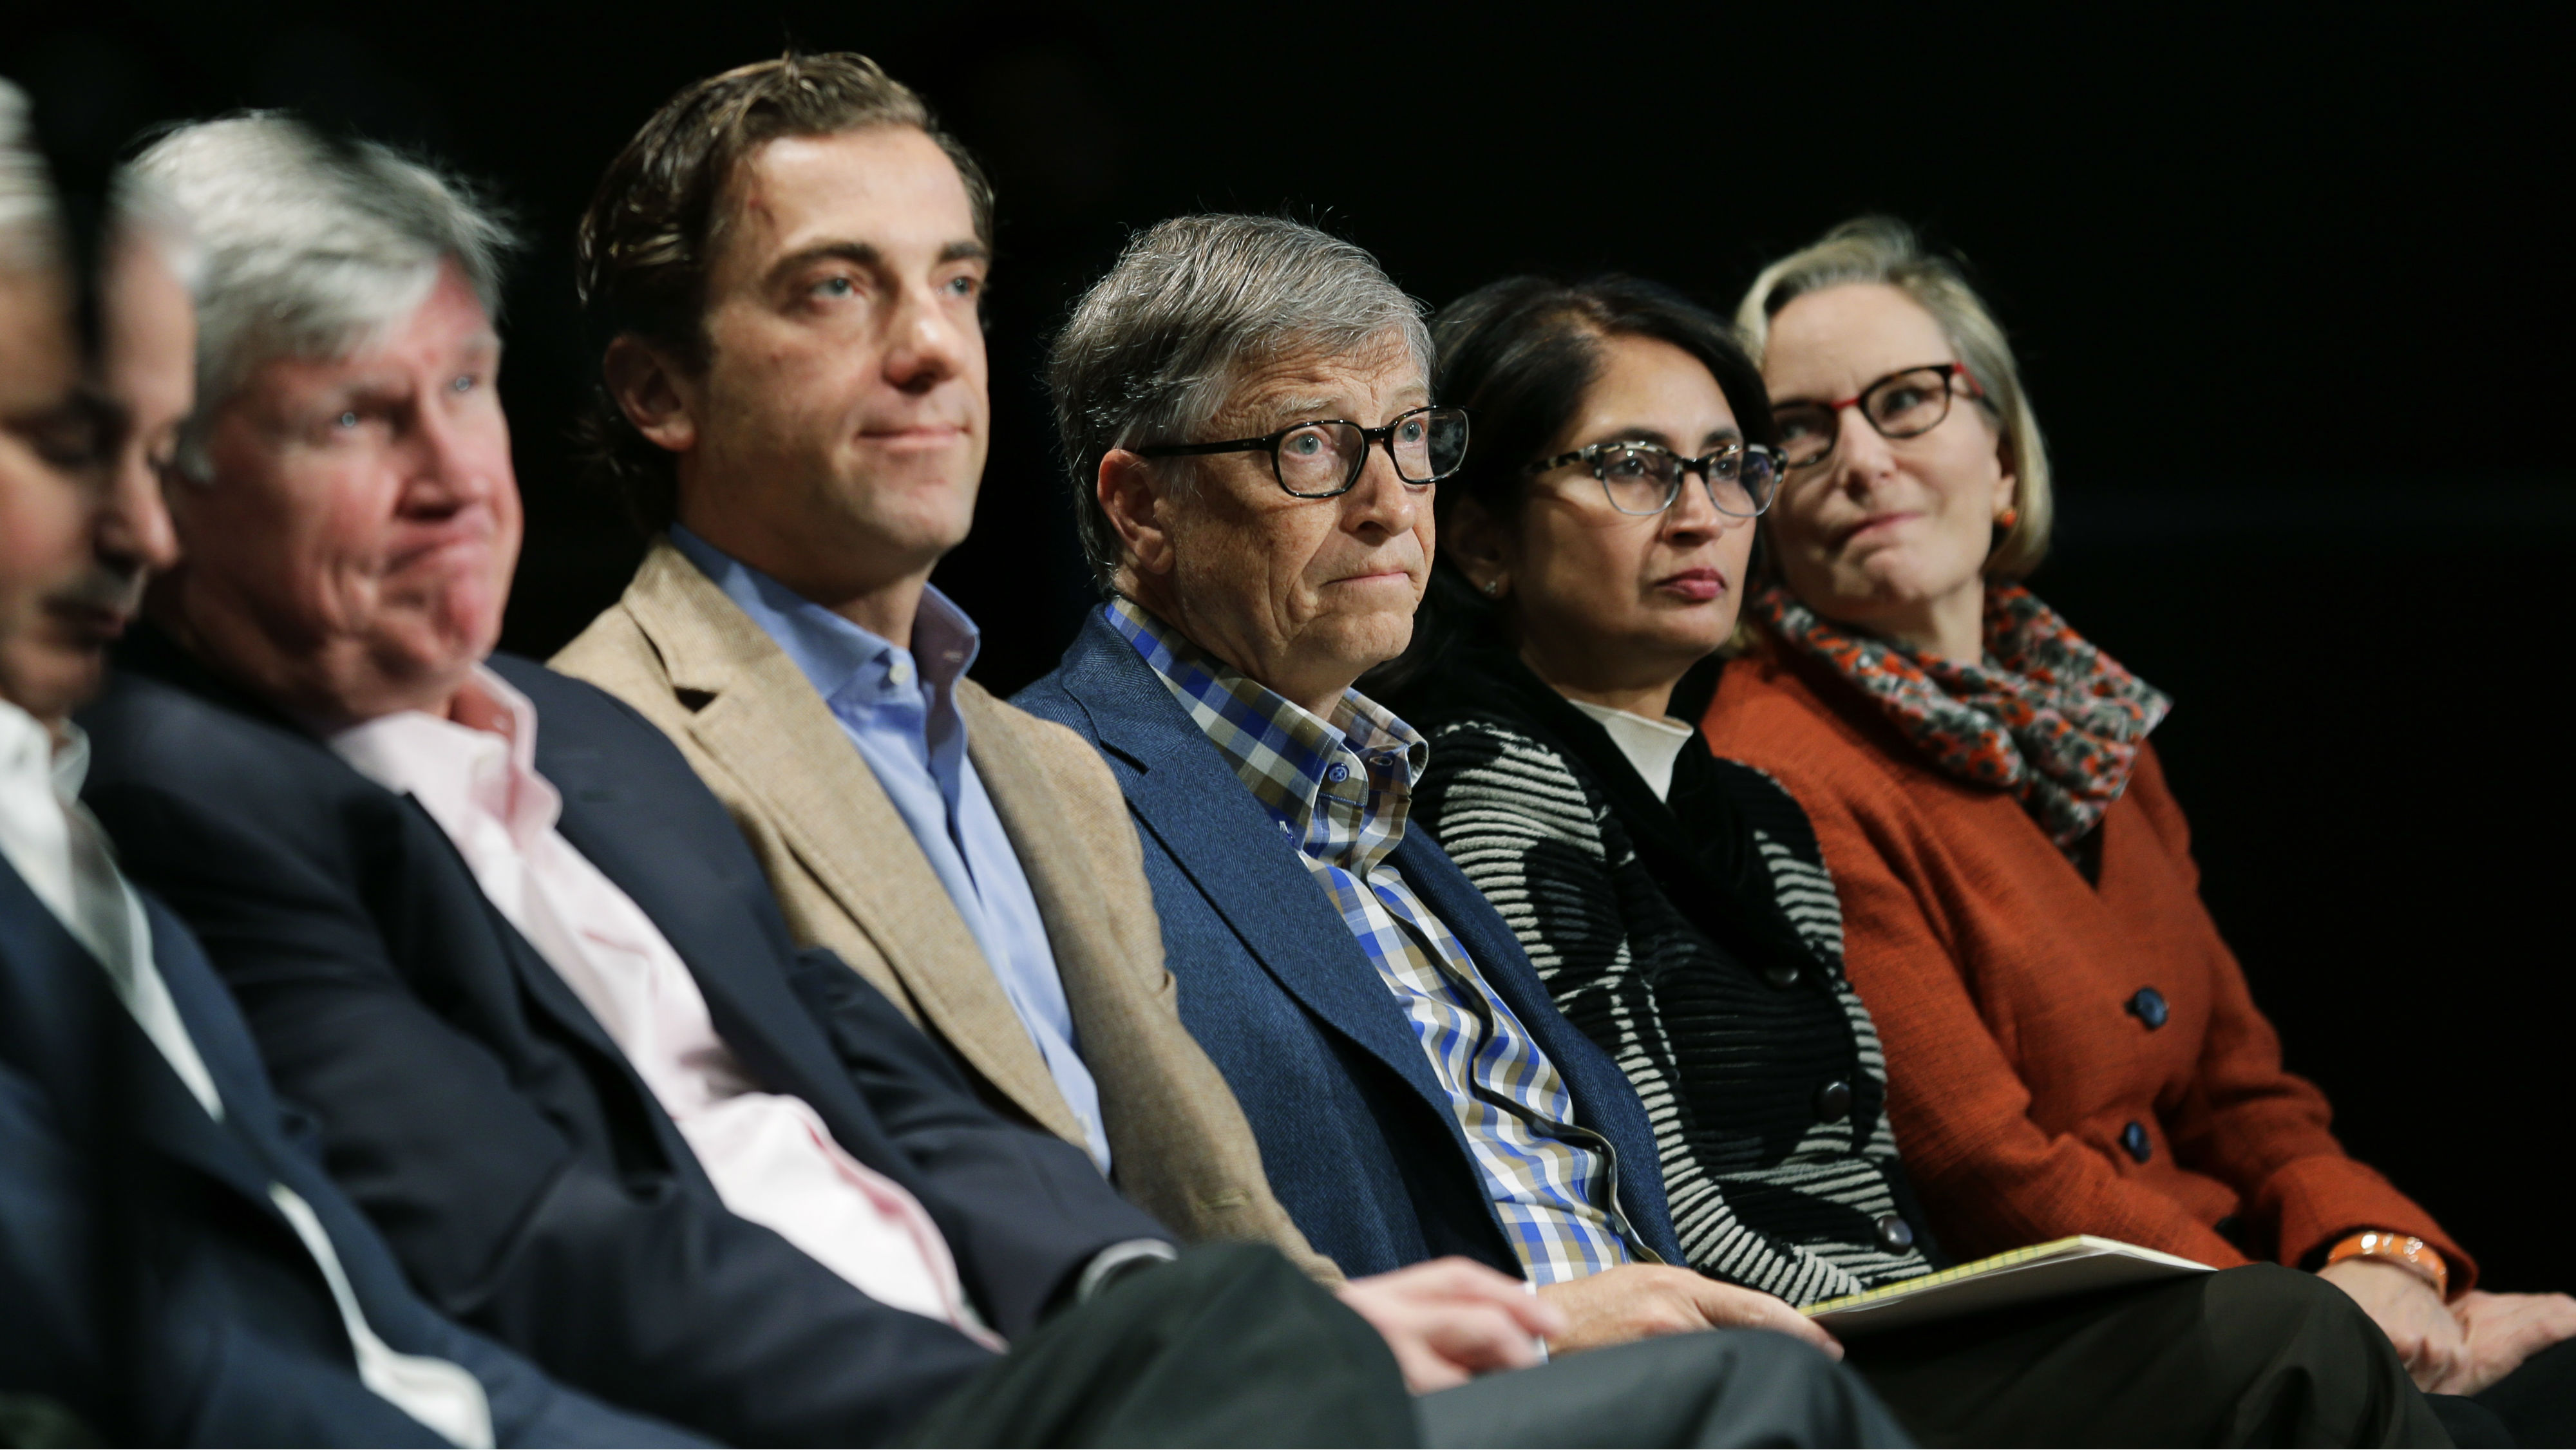 Microsoft Corp. founder Bill Gates, center, attends Microsoft's annual shareholders meeting, Wednesday, Dec. 2, 2015, in Bellevue, Wash. (AP Photo/Ted S. Warren)